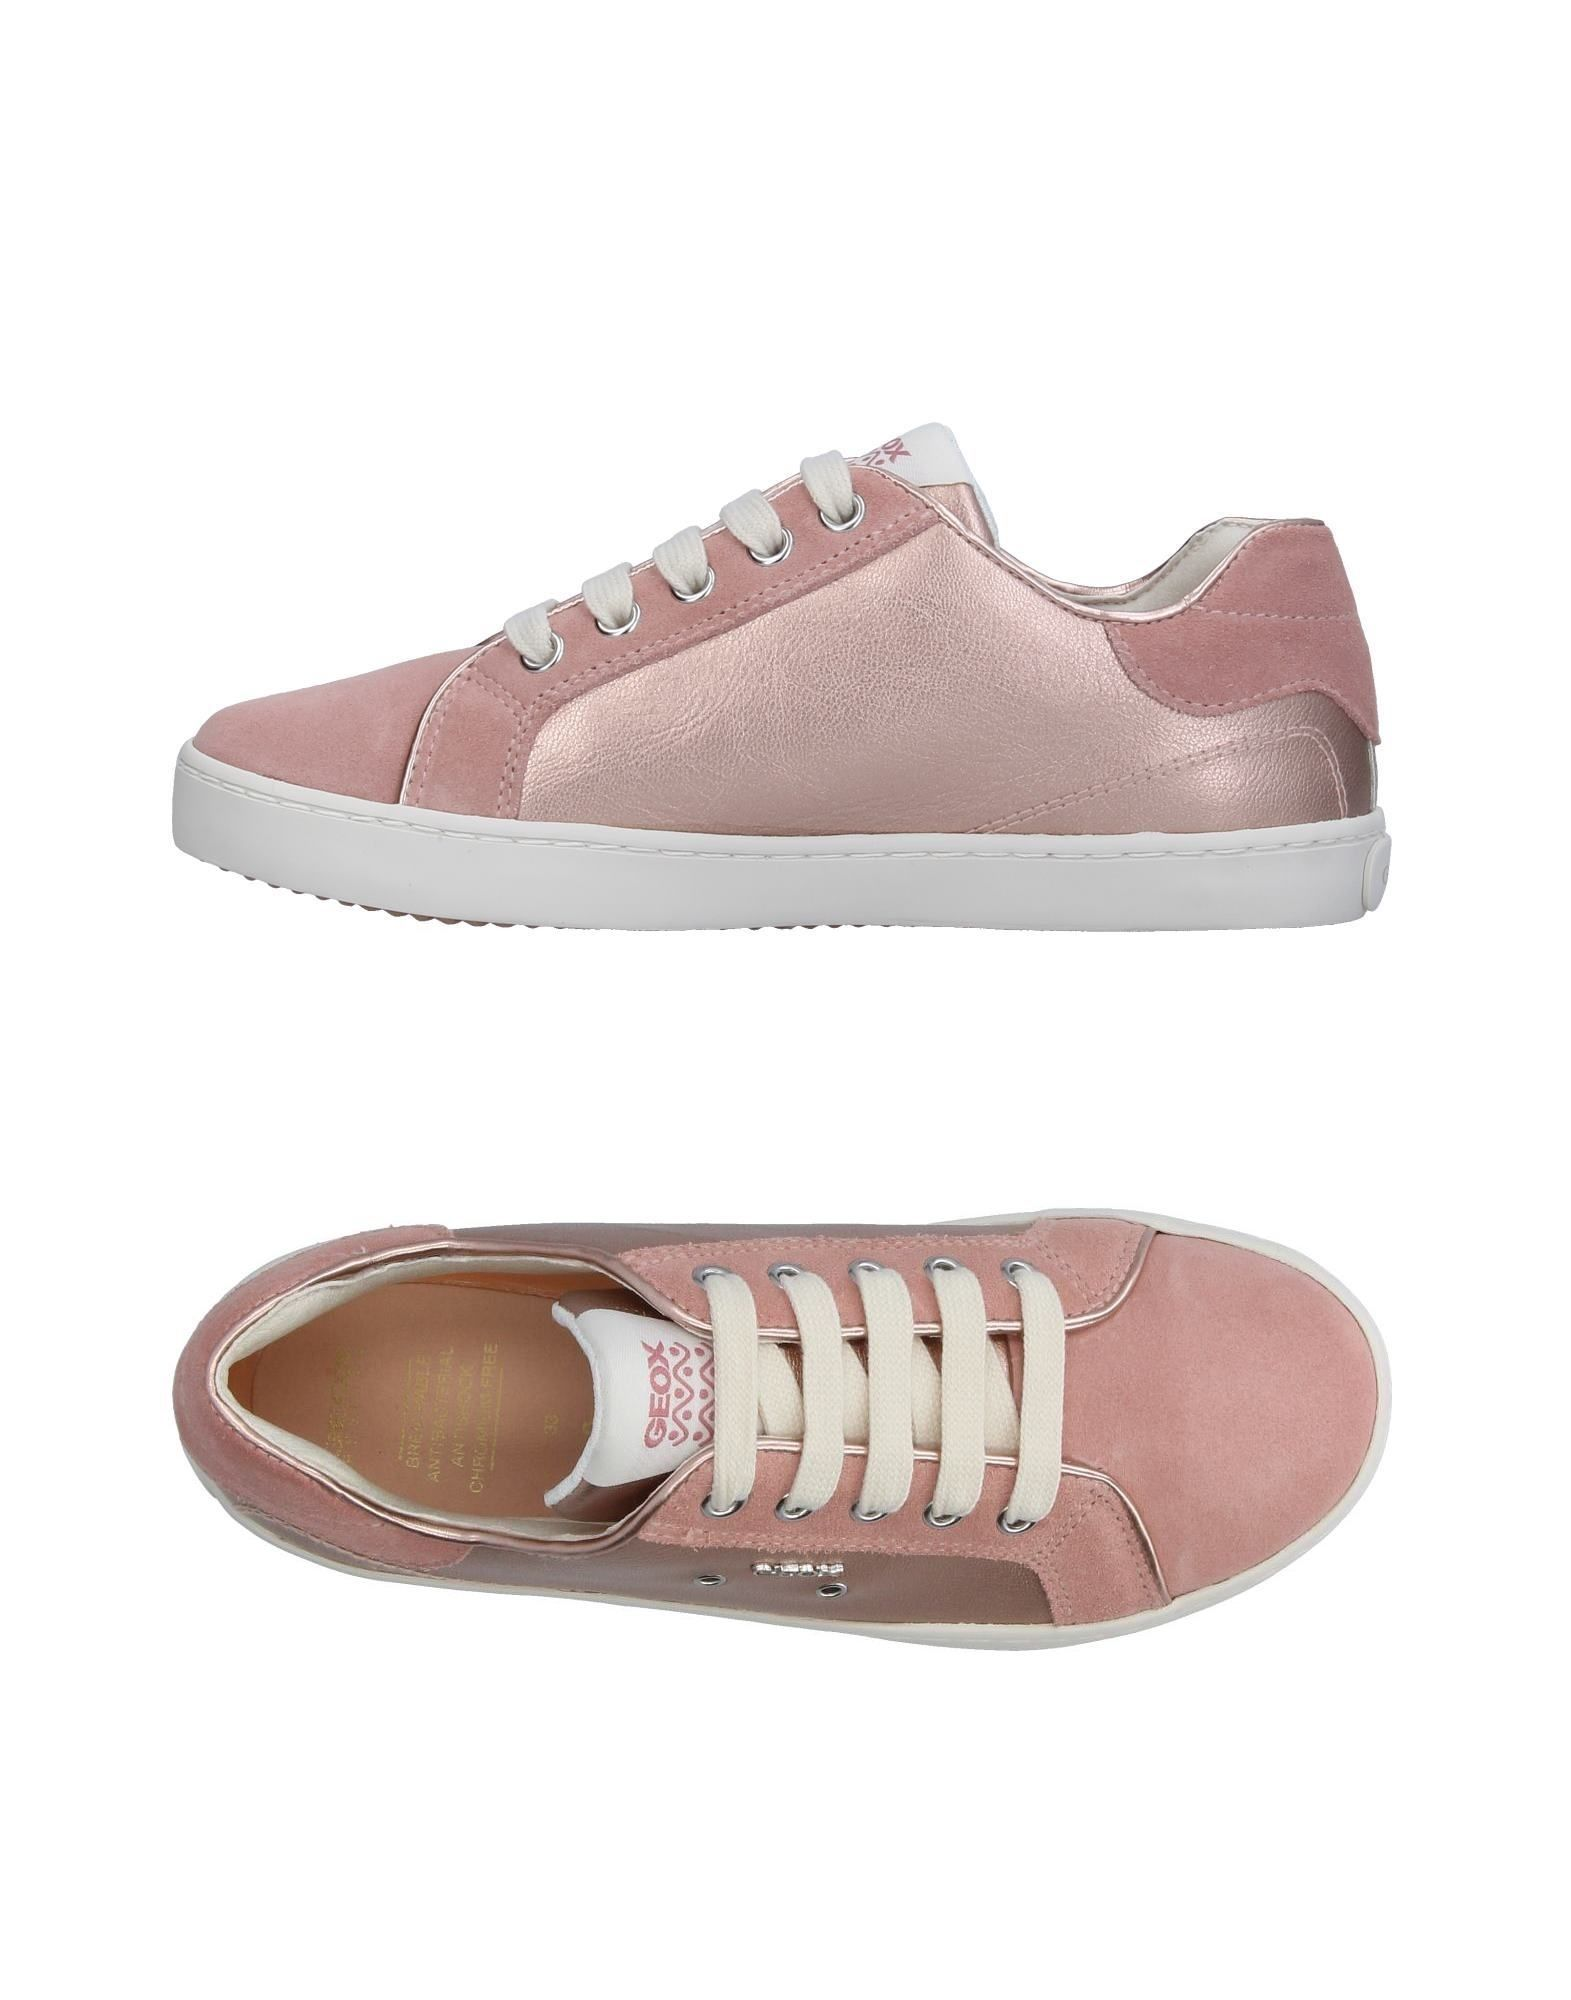 Geox Pink Girl Leather Shoes